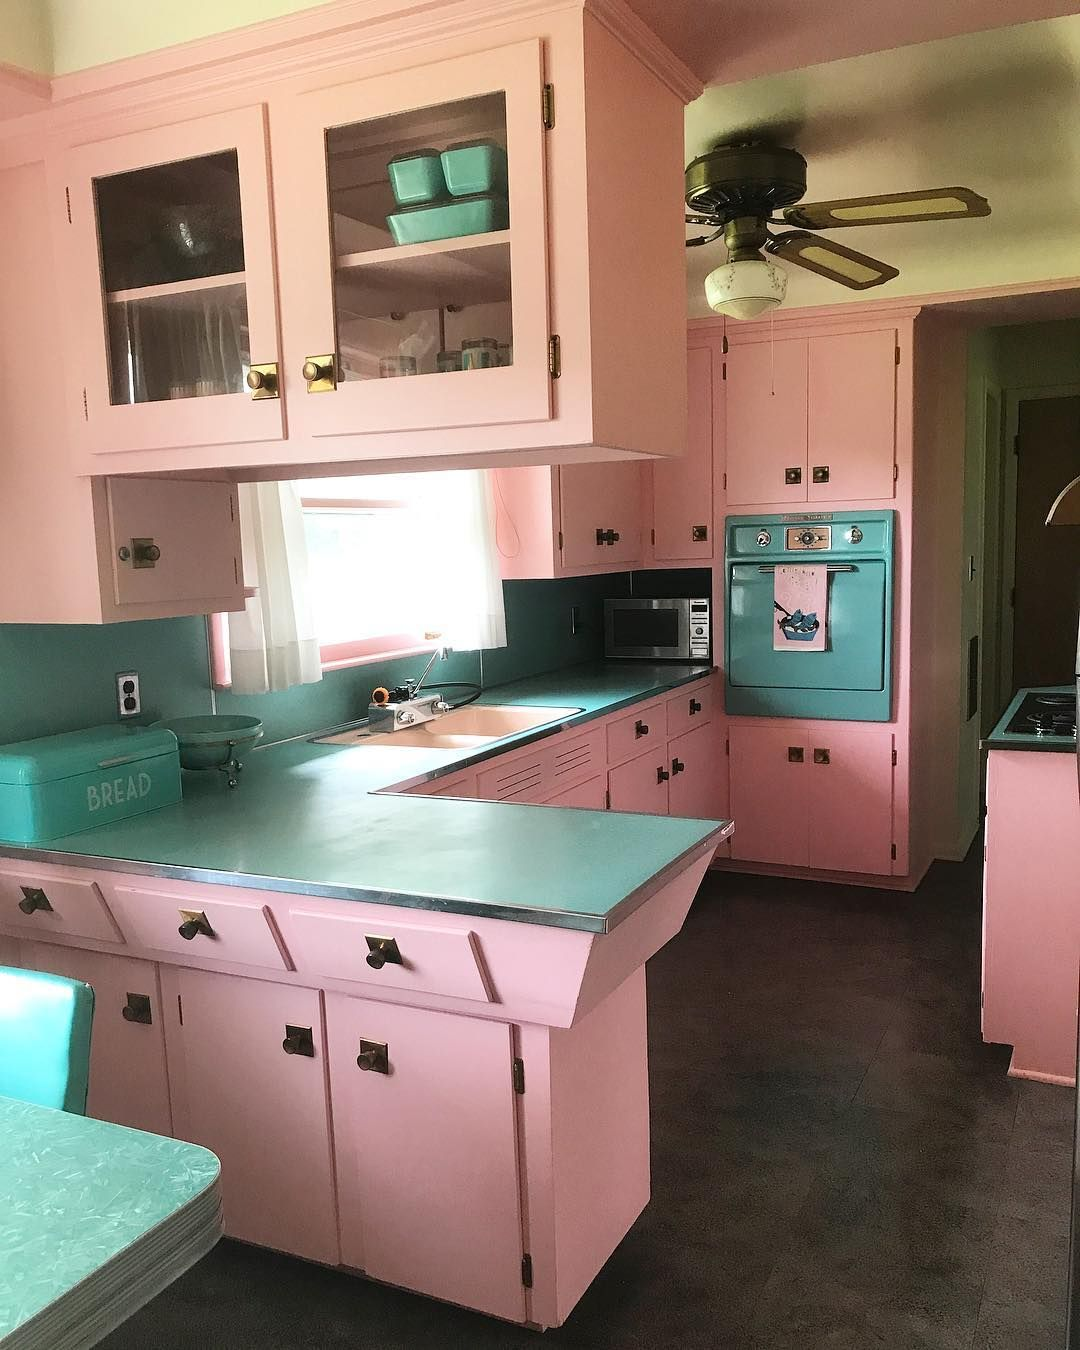 Pin By 12 Sakko On Pinterest Pink Houses Kitchens And